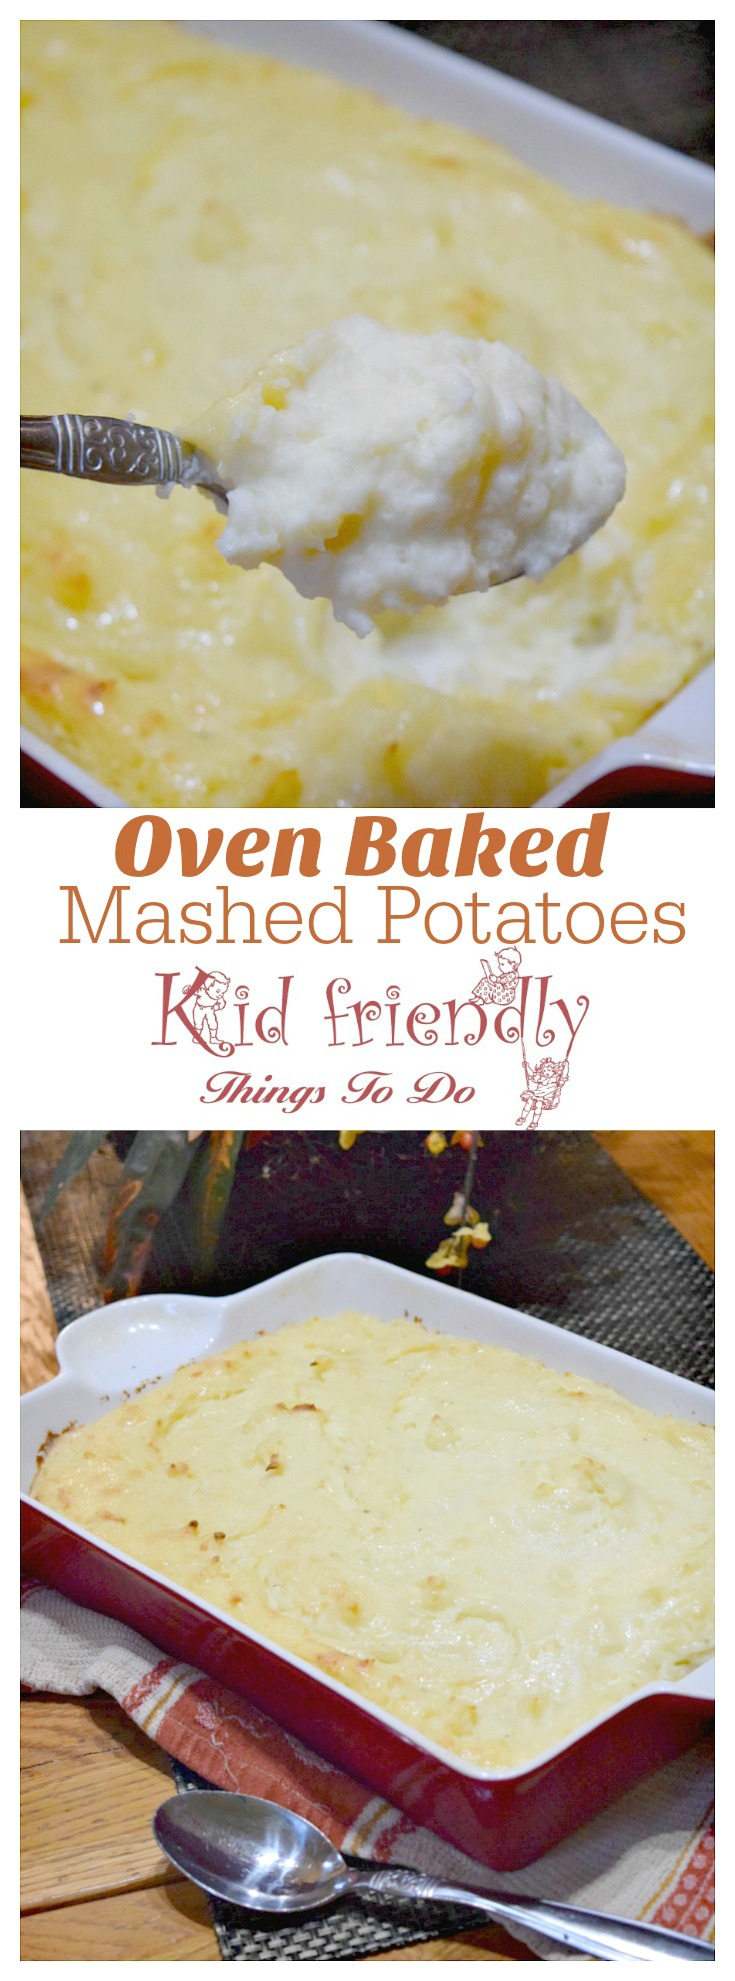 Make ahead oven baked mashed potatoes. Perfect side for busy holiday dinners! www.kidfriendlythingstodo.com